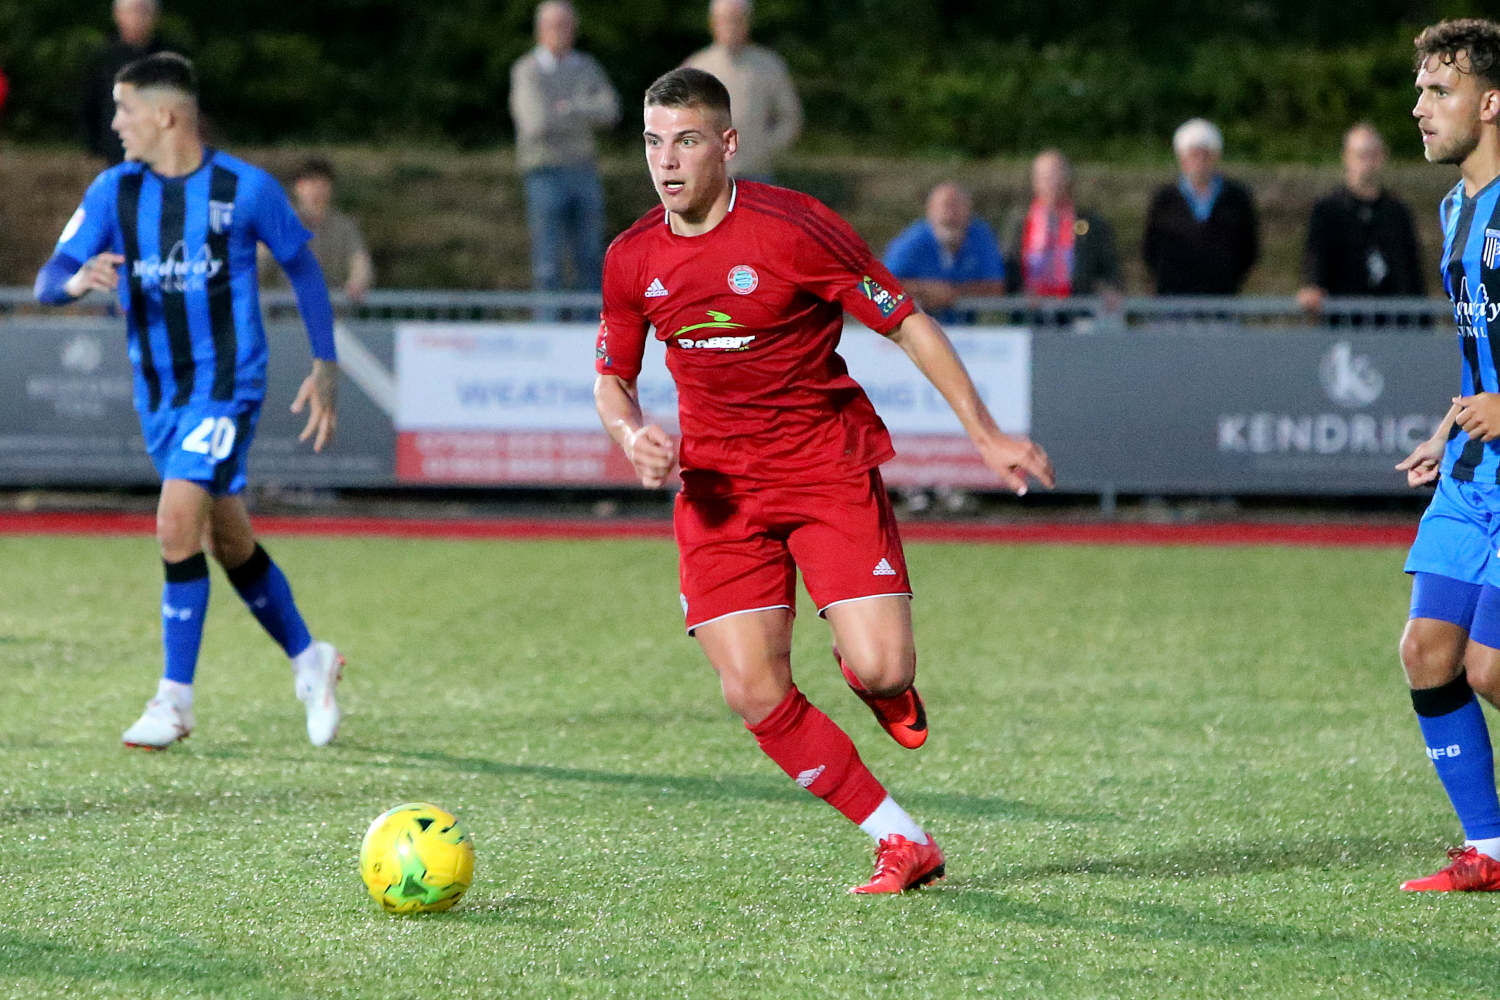 Striker Kealy joined Worthing to boost Football League goal